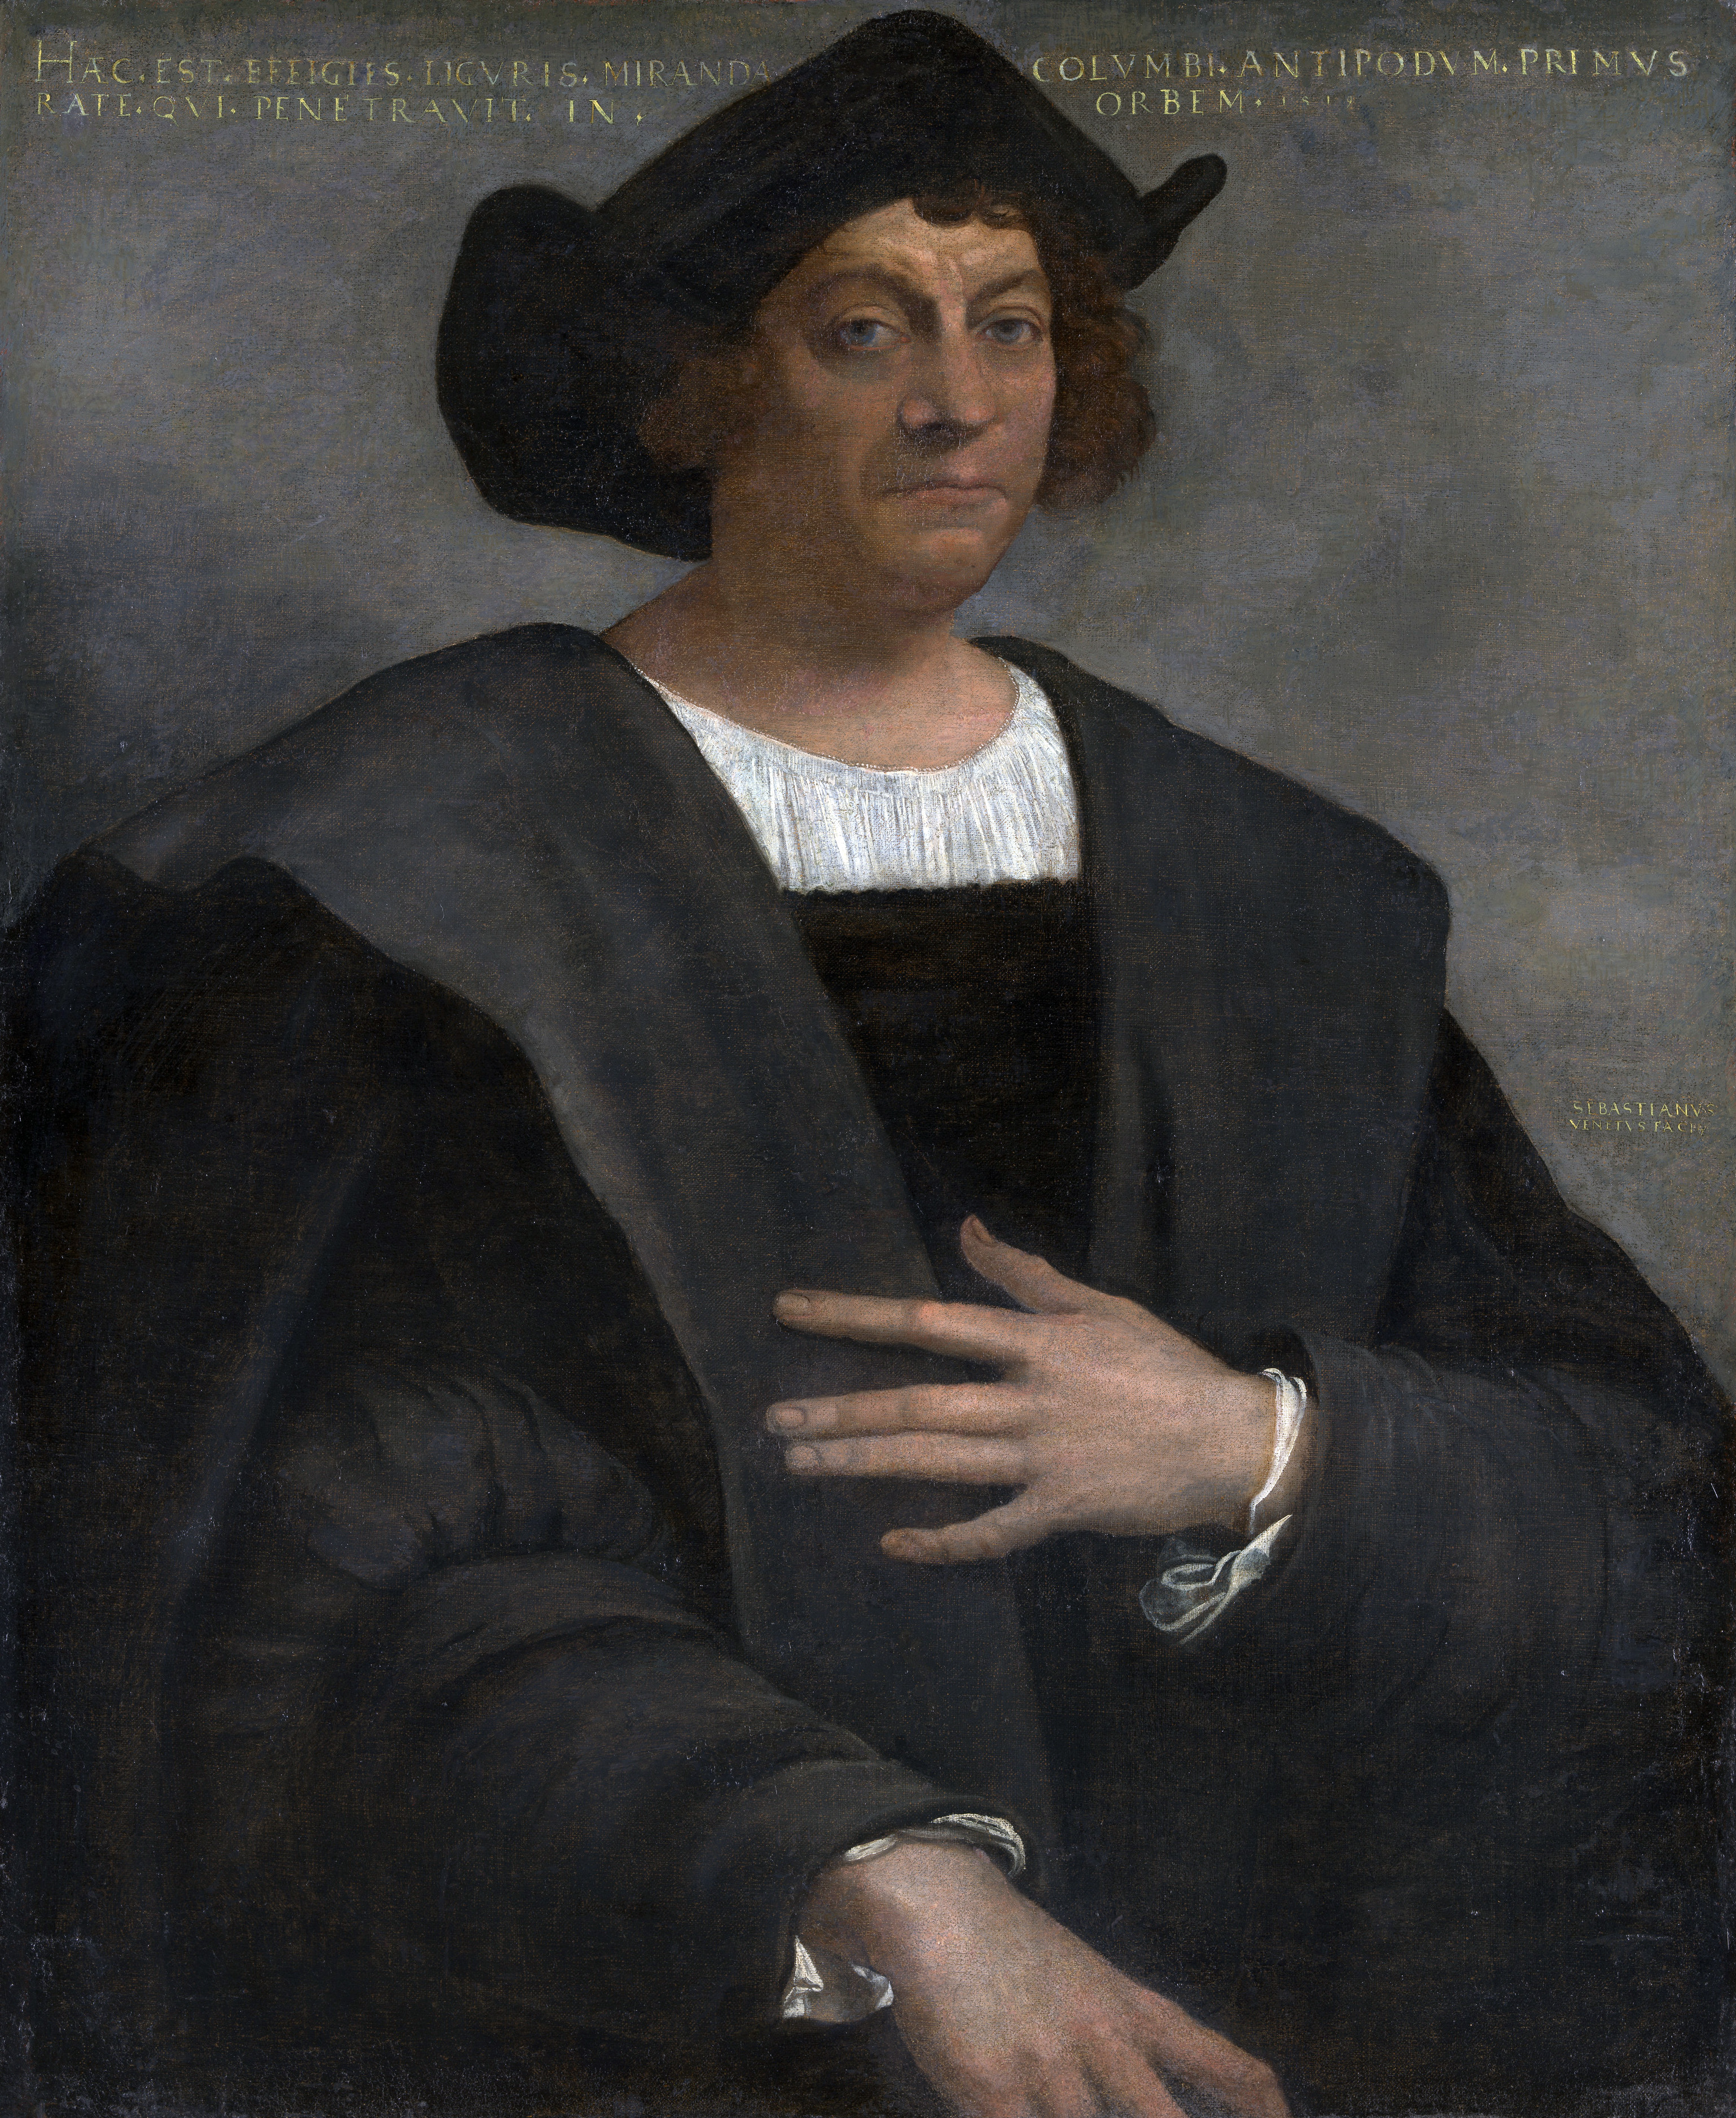 Christopher Columbus, aka Cristobal Colón; 16th-century portrait by Sebastiano del Piombo